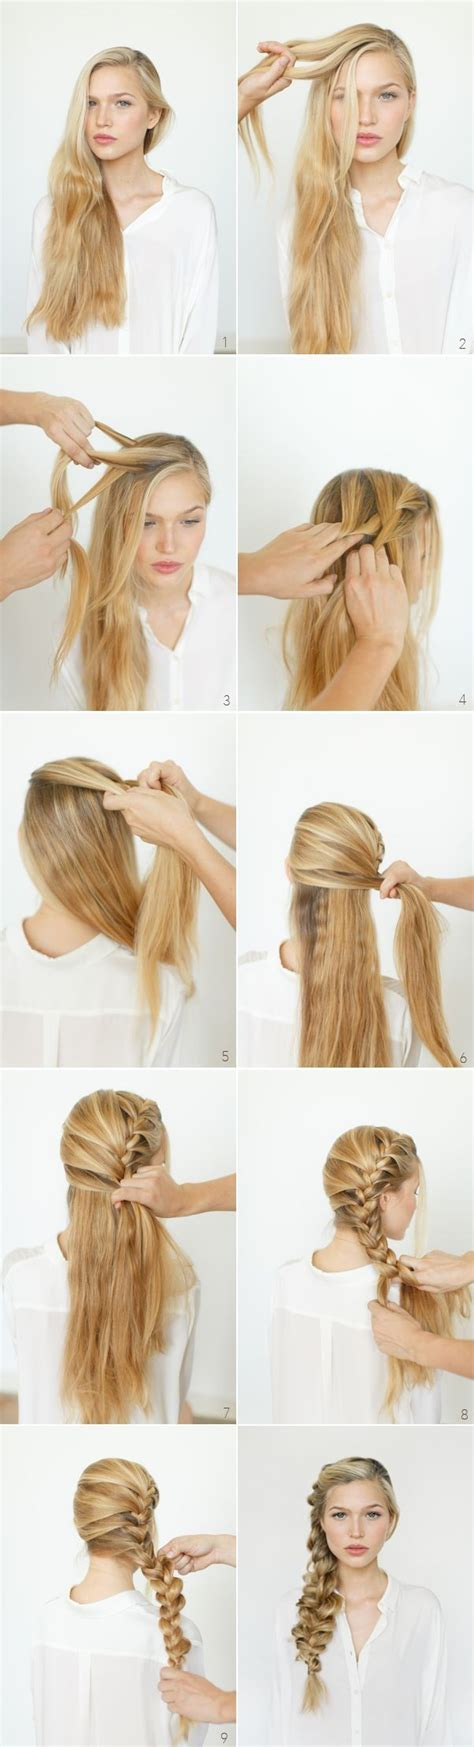 easy hairstyles for long straight hair step by step step by step hairstyles for long hair long hairstyles